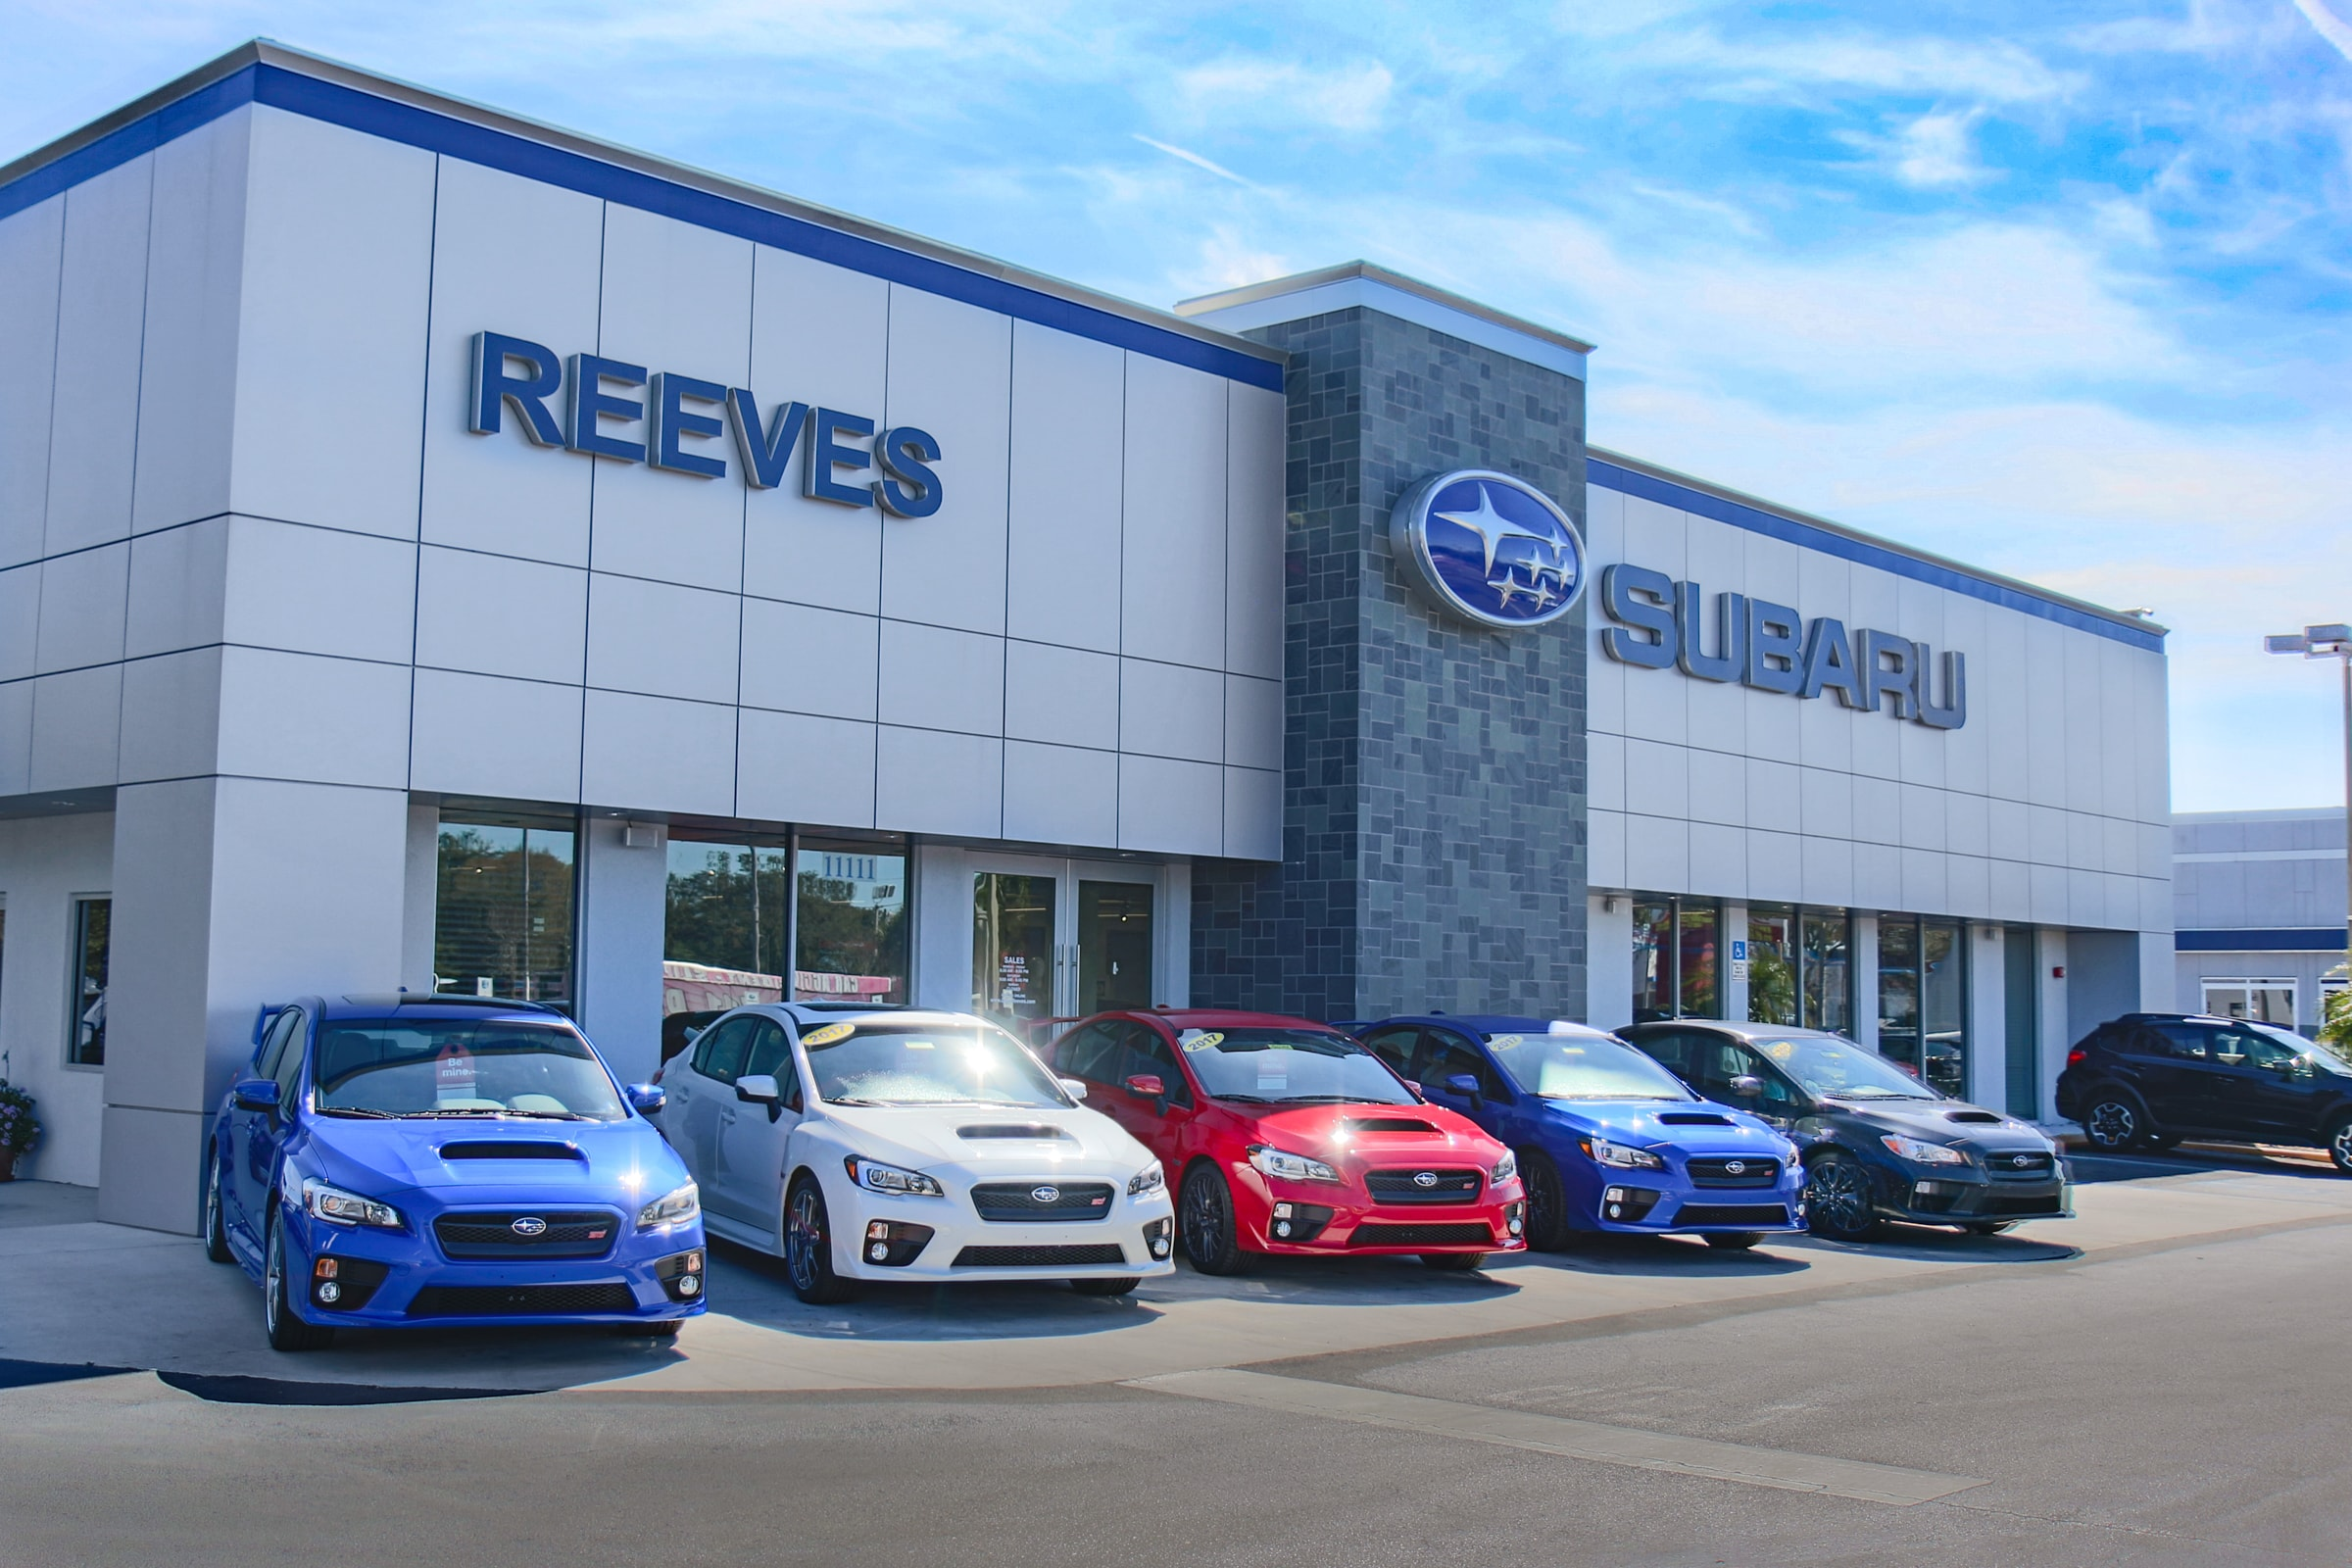 New Subaru Cars Suvs Cuvs Hatchbacks For Sale In Tampa Reeves